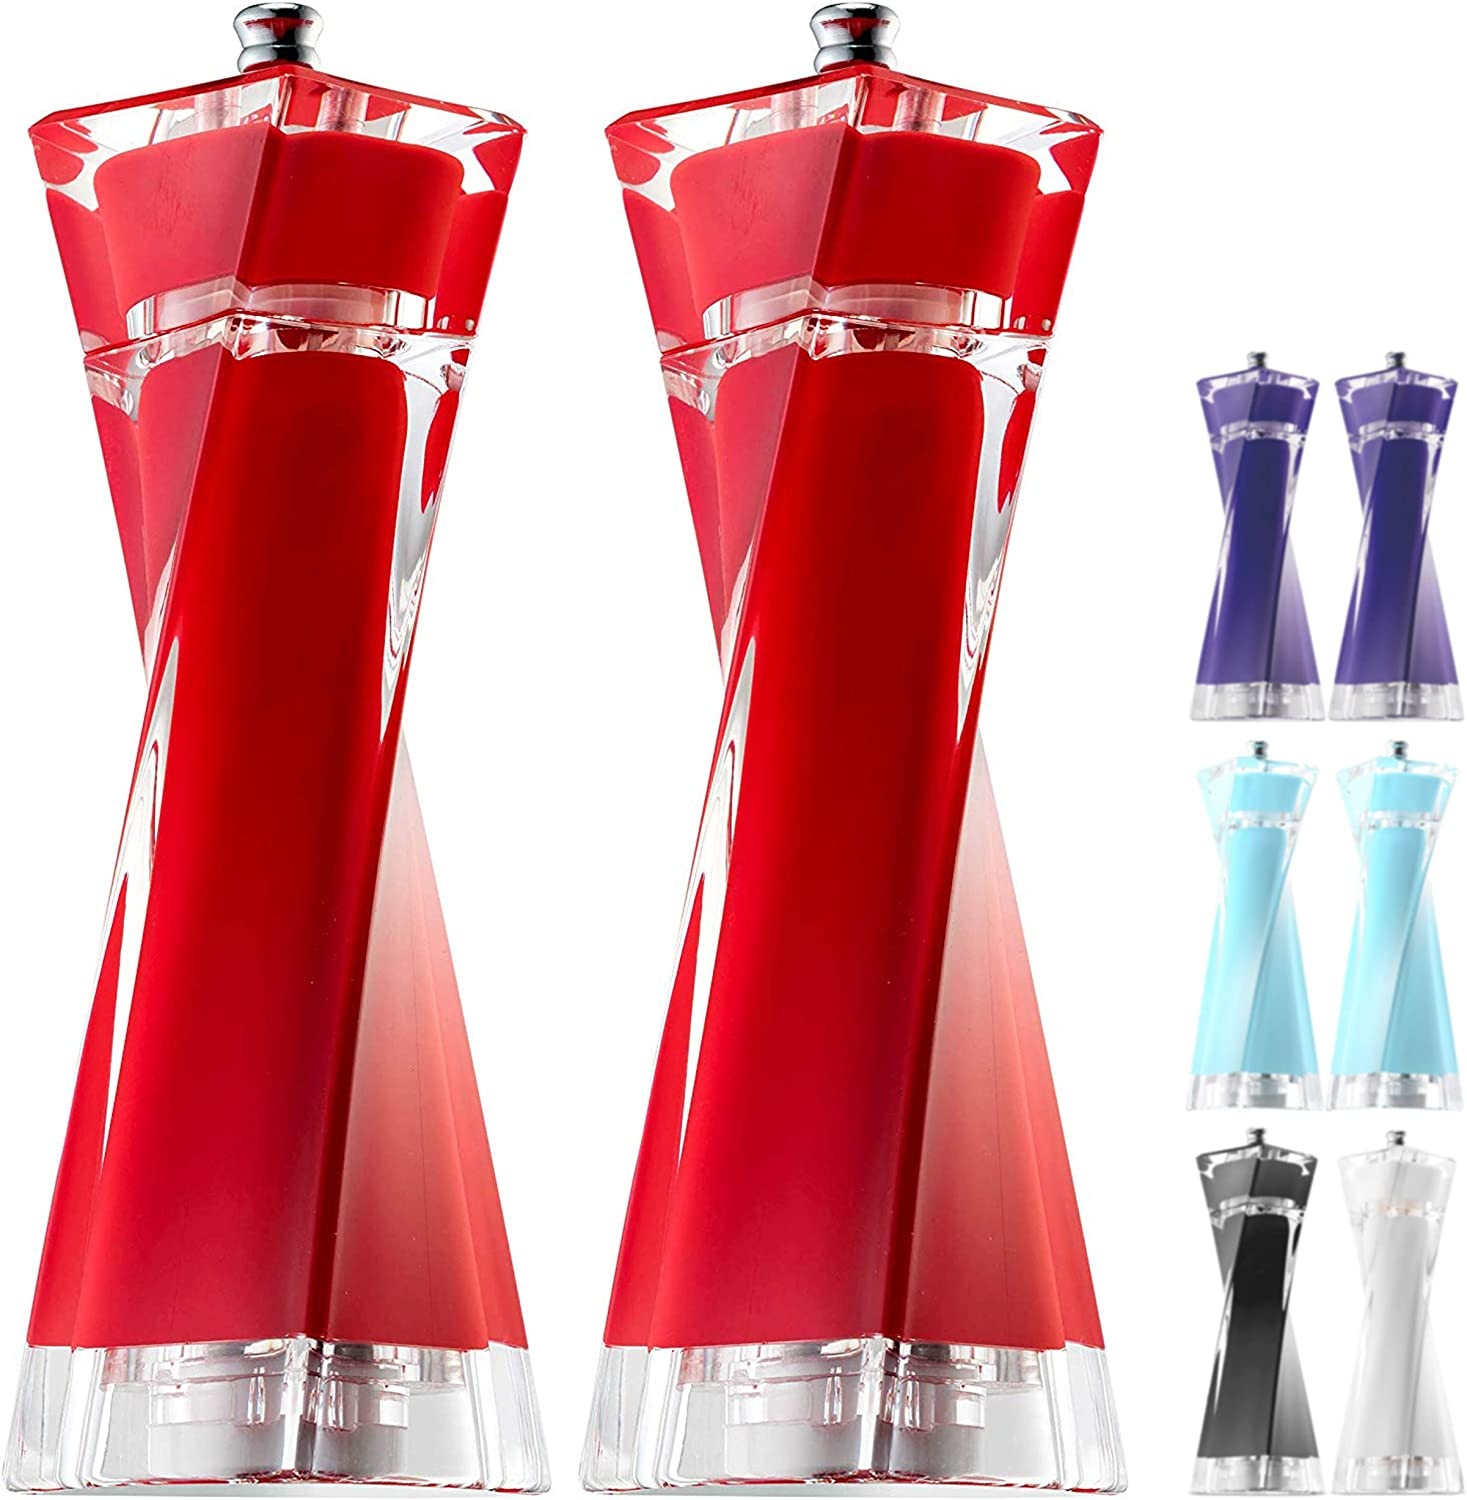 MITBAK Acrylic Red Salt and Pepper Grinders Set | Sea Salt and Pepper Mills Easy to Use and Equipped with Adjustable Coarseness And Ceramic Mechanism | Unique Kitchen Gadgets | Premium Quality